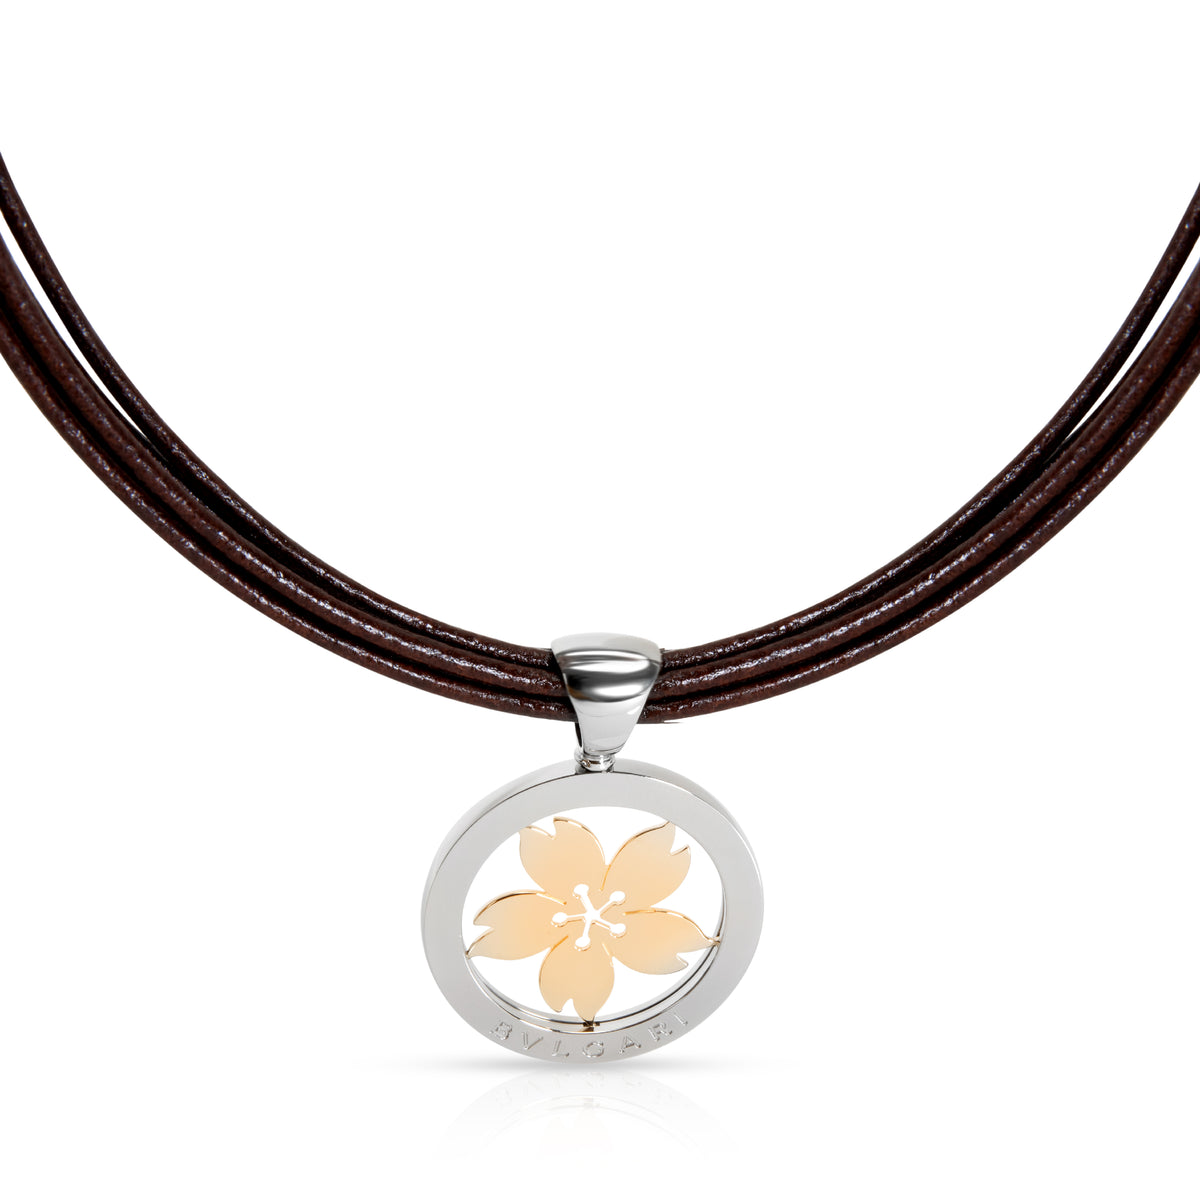 Bulgari Tondo Sakura Necklace in 18K Yellow Gold & Stainless Steel on Leather